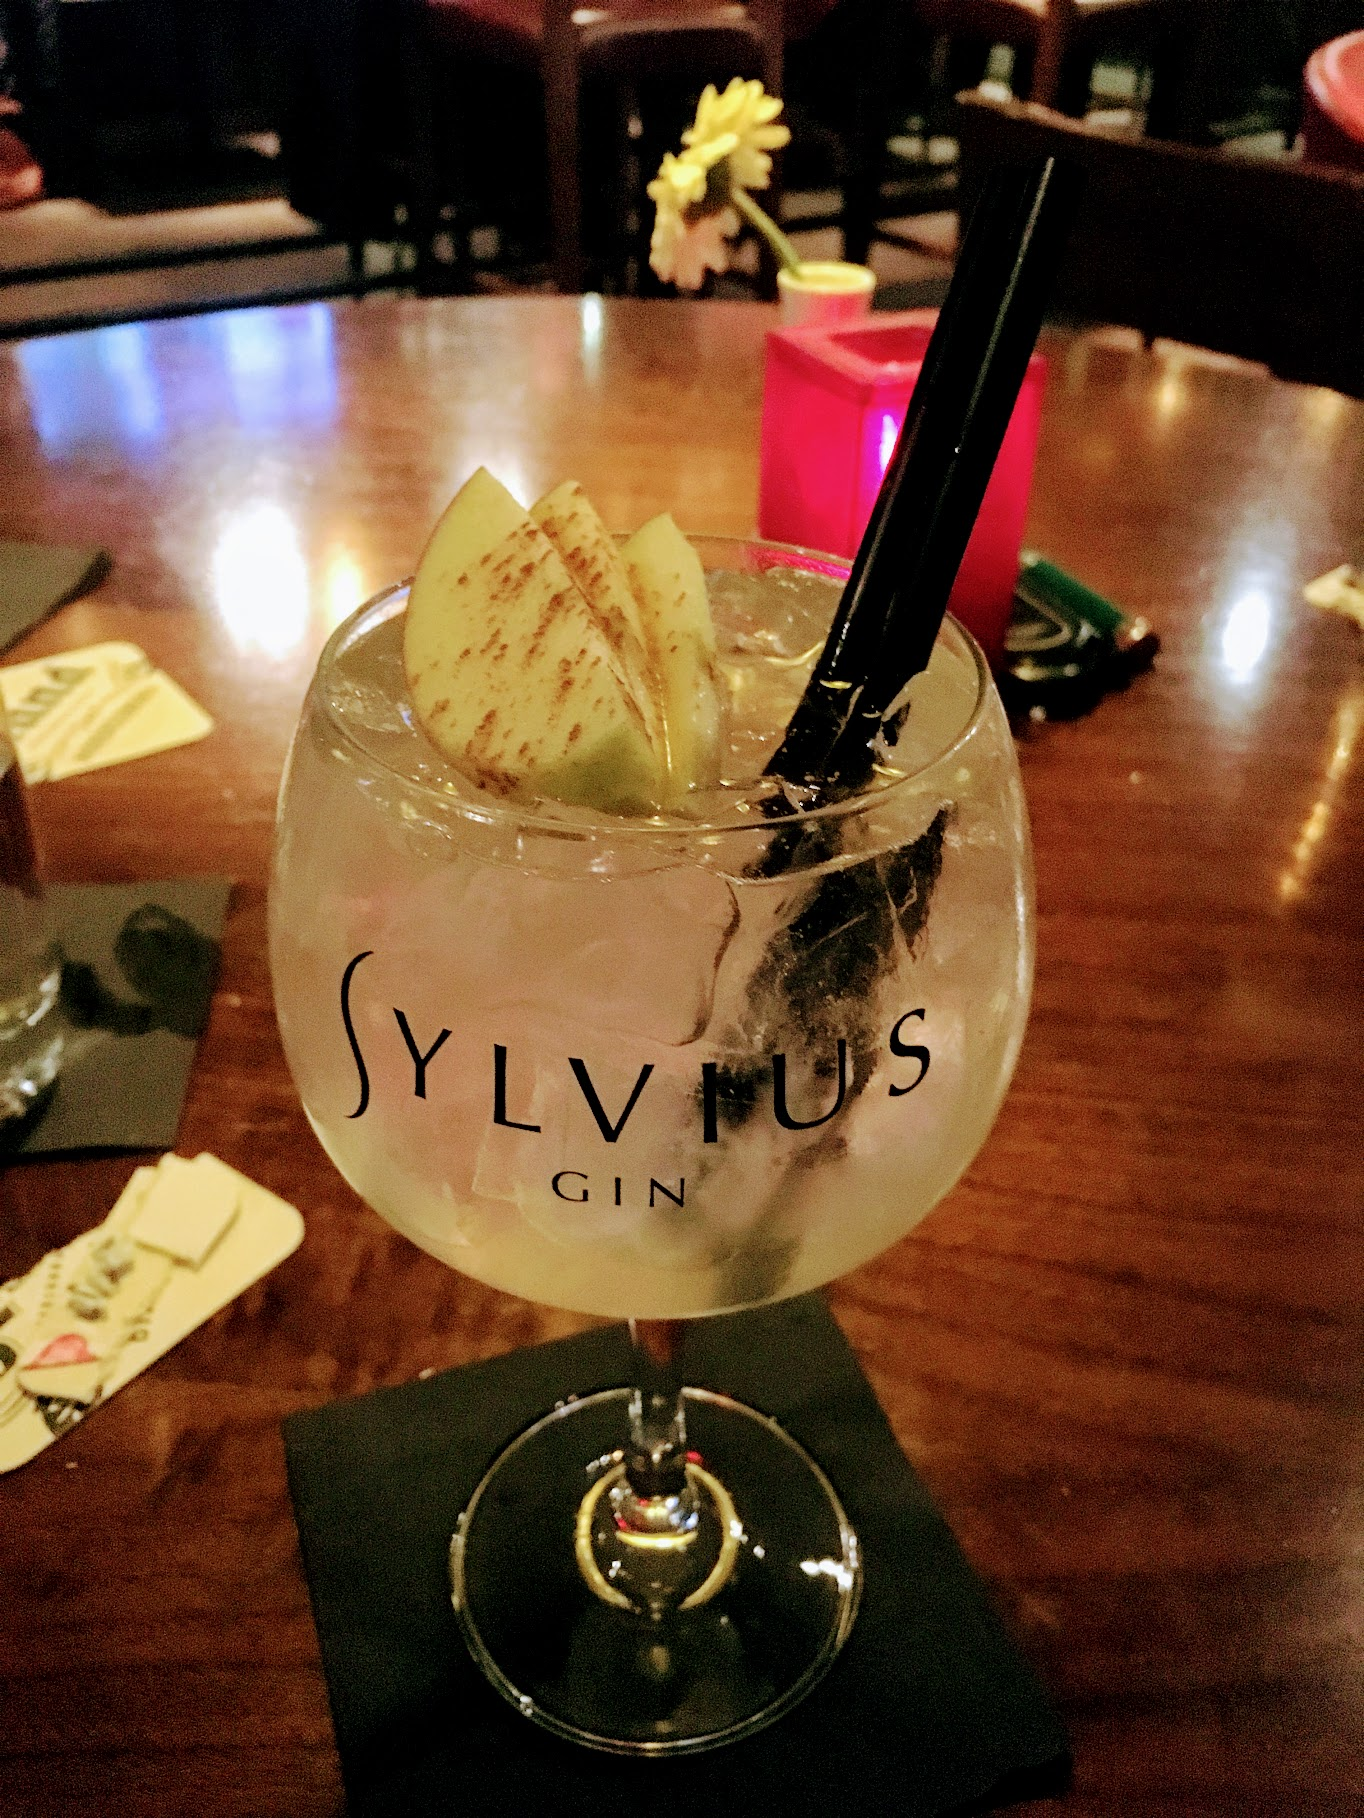 Sylvius Gin, Amsterdam, The Netherlands